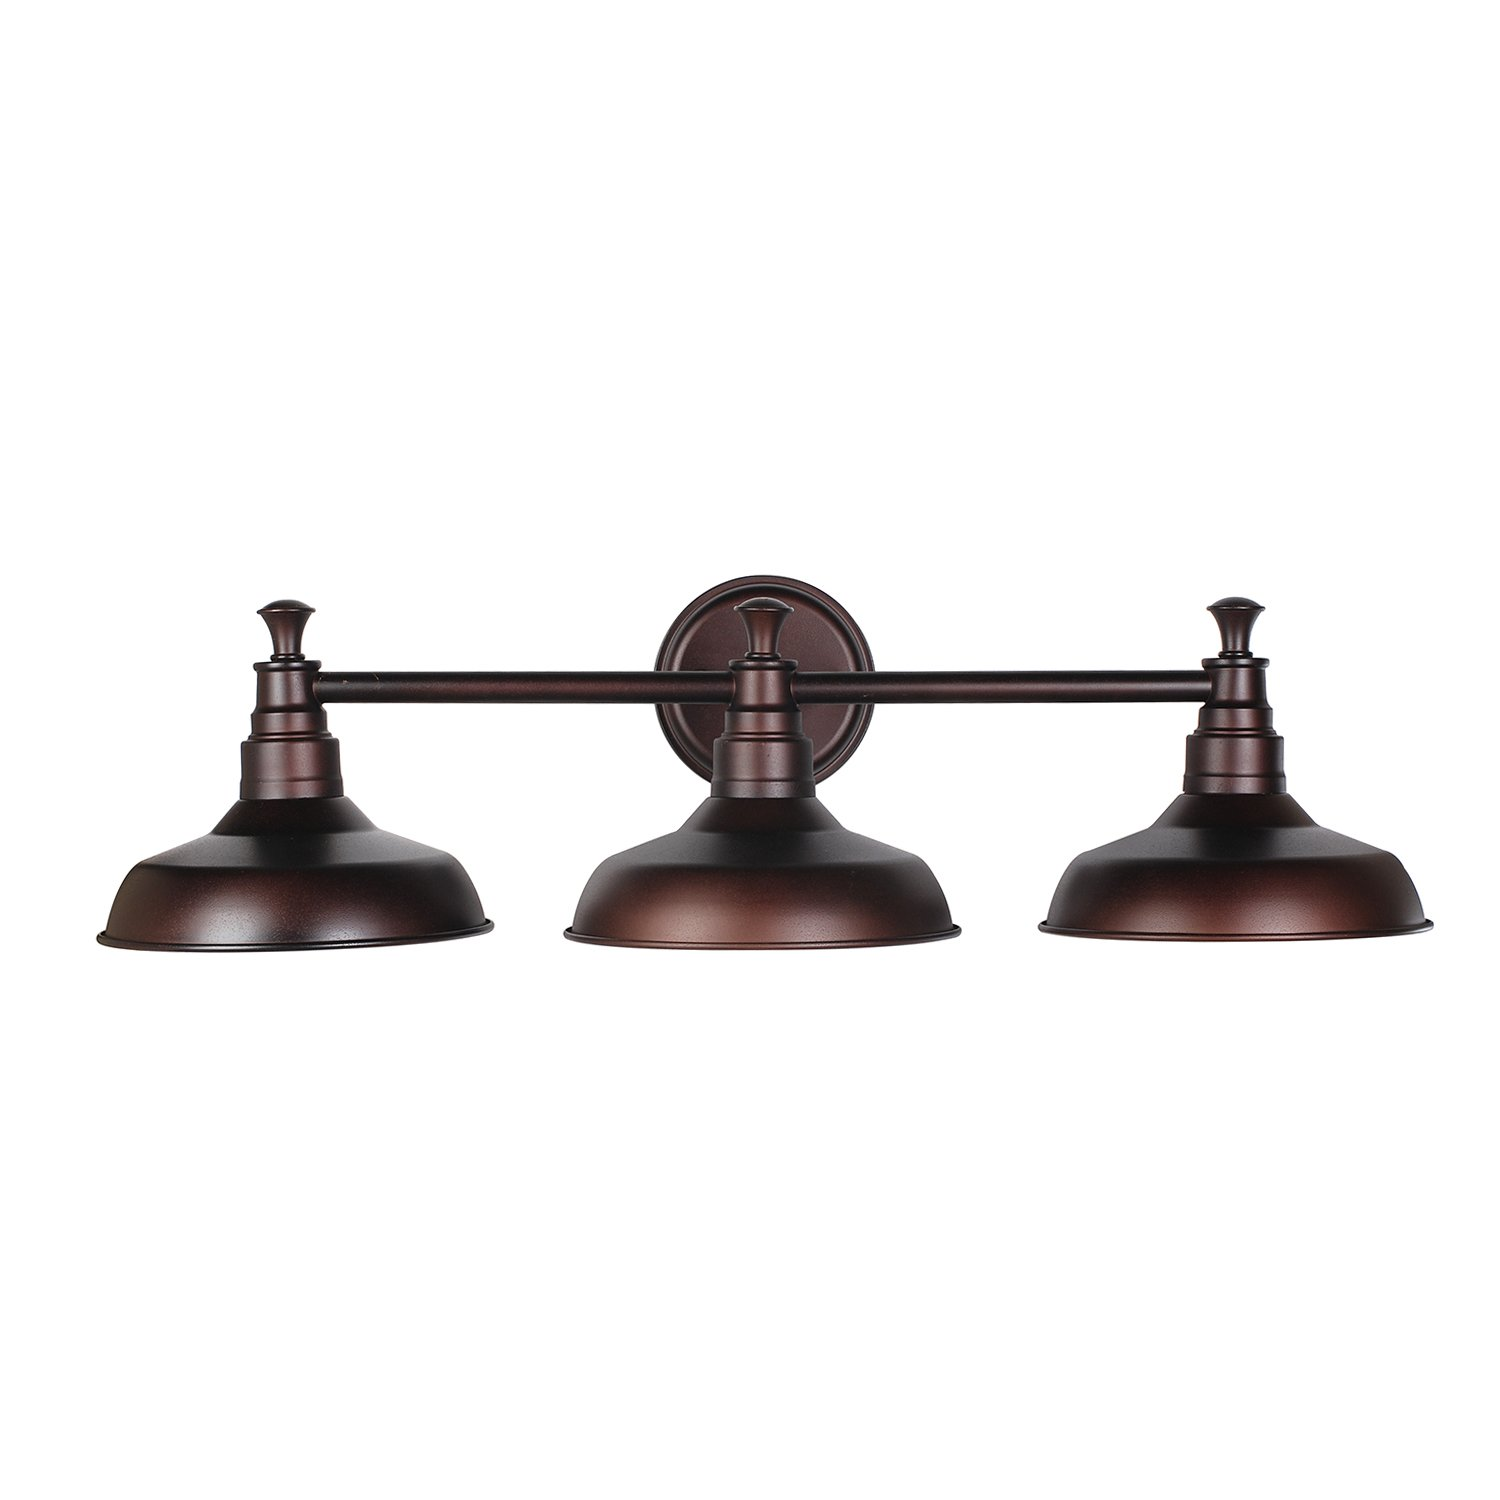 Bathroom vanity lights brushed nickel - Design House 520320 Kimball 3 Light Vanity Light Bronze